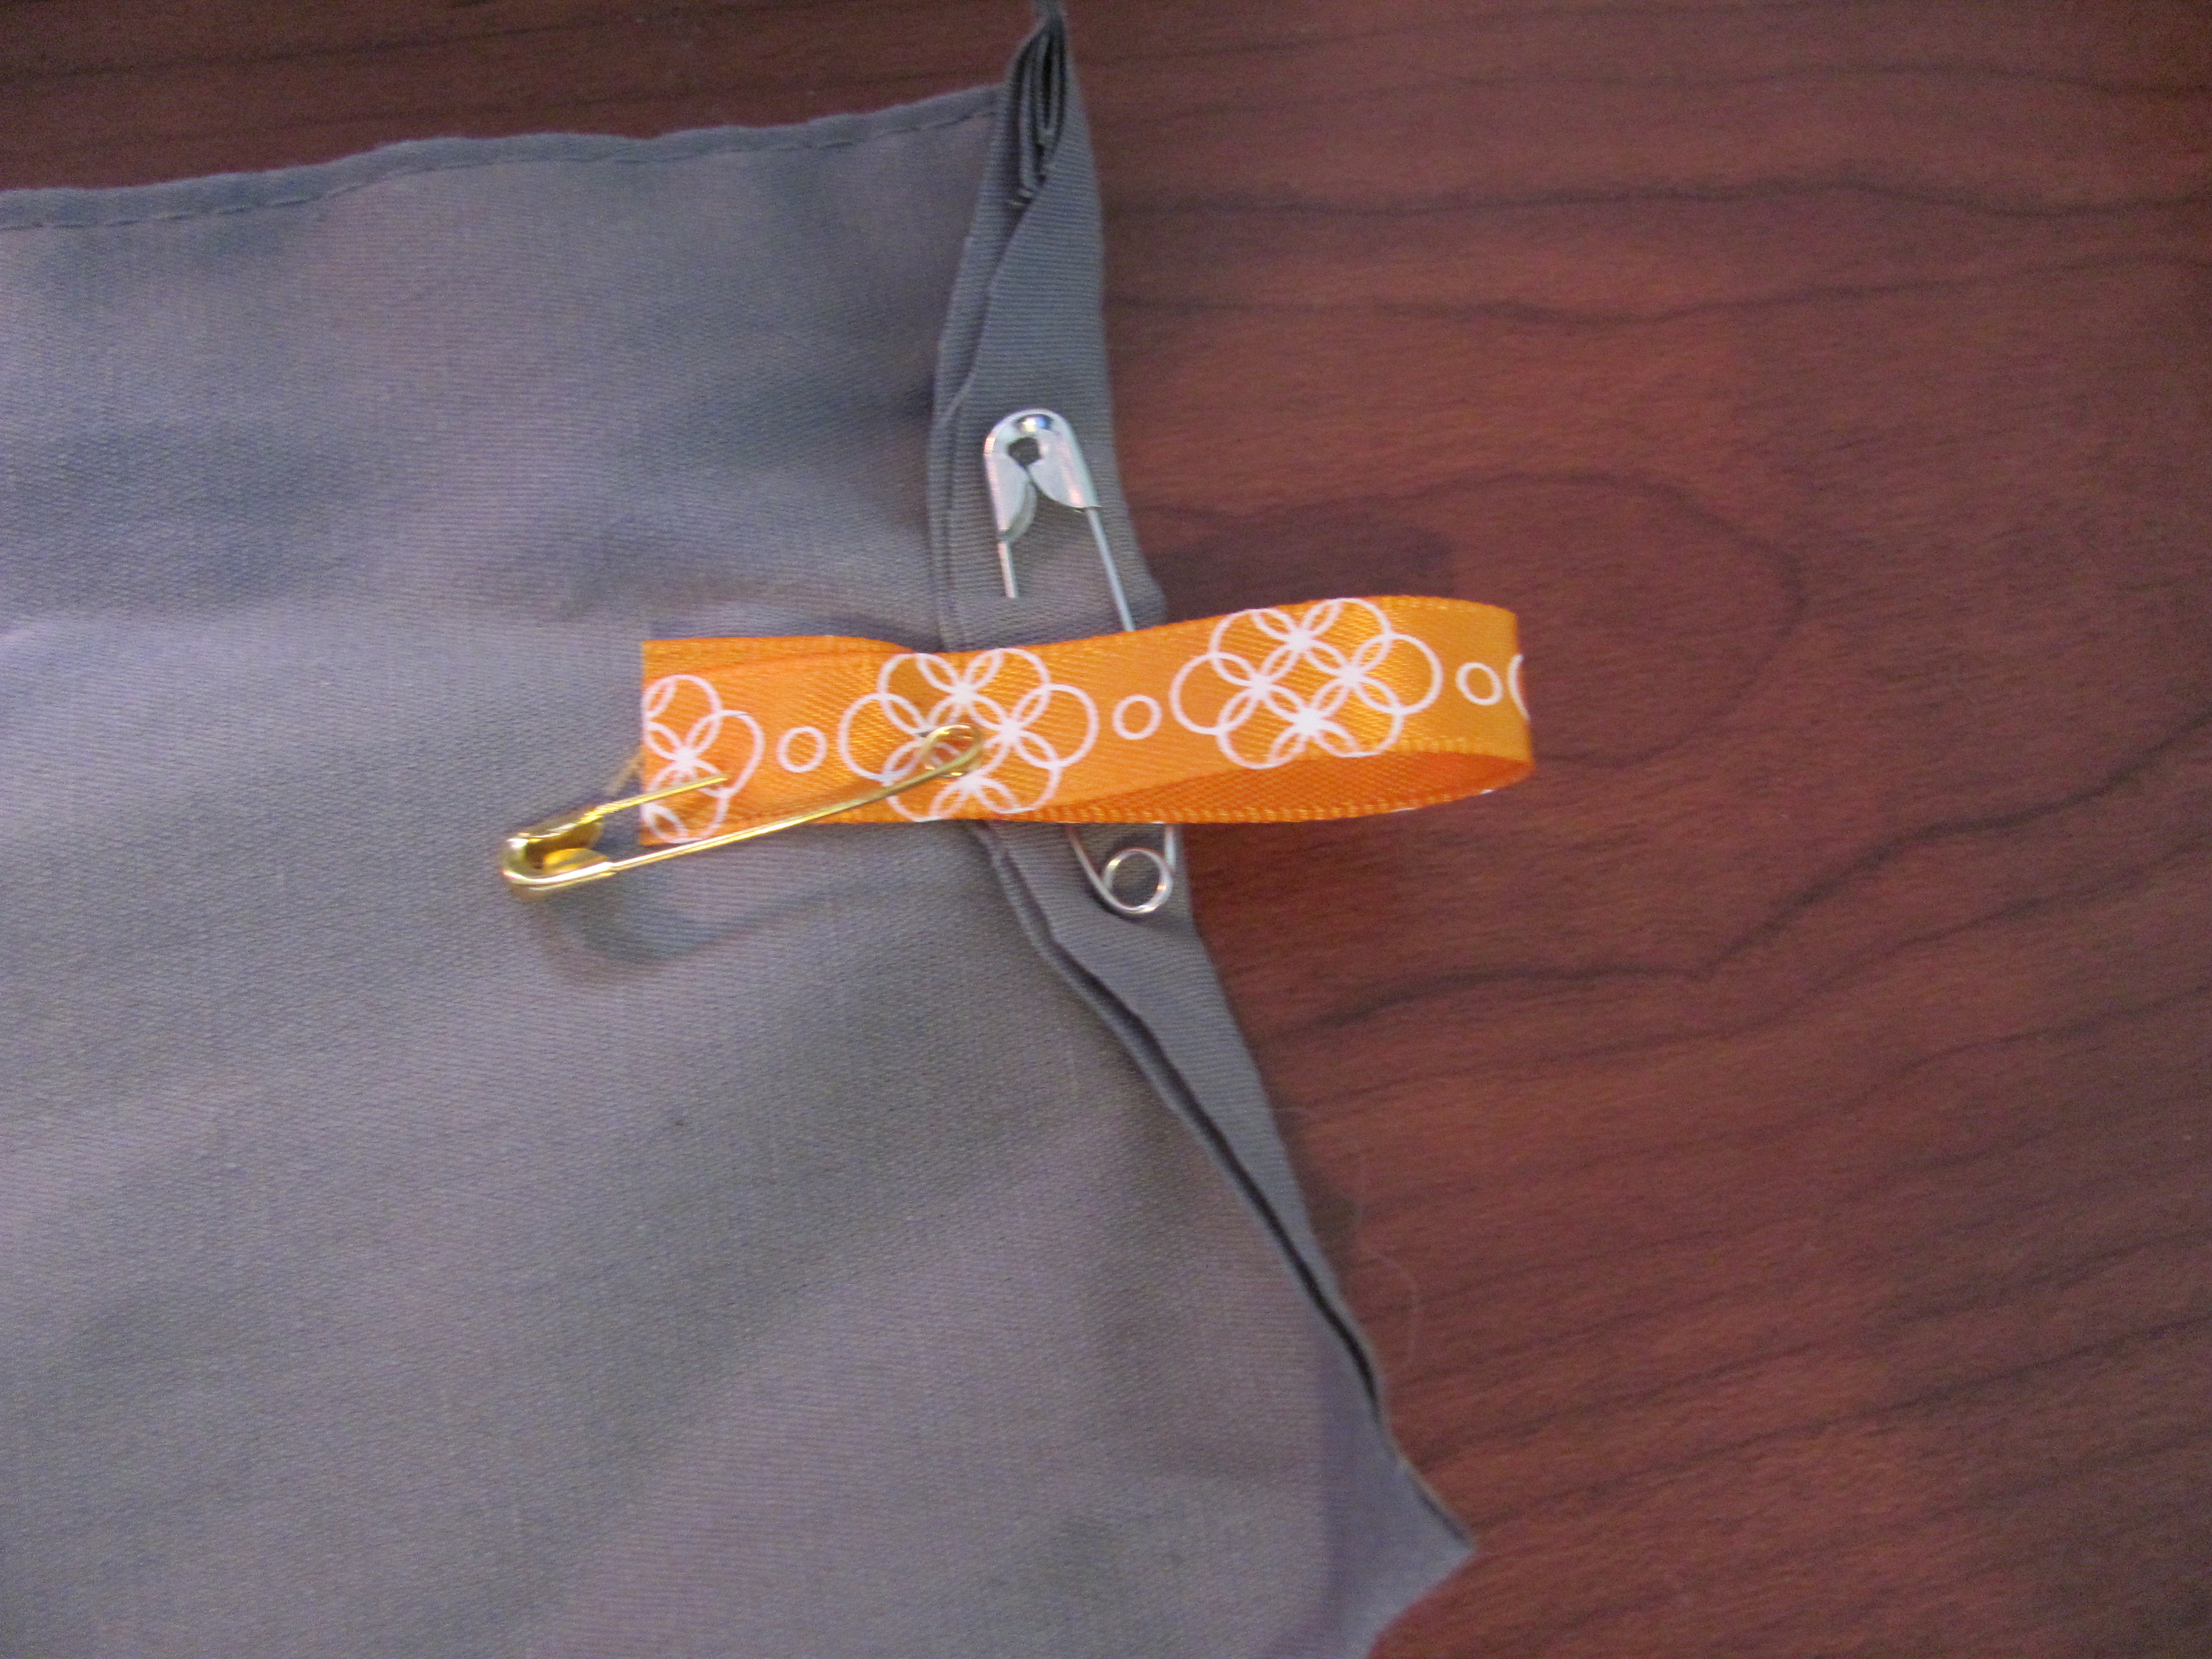 Fabric curtain tie backs - If You Don T Have A Strip Cut From The Top Of A Sheet Lying Around Which Is Most Likely The Case You Will Just Have To Use A Strip Of Fabric And